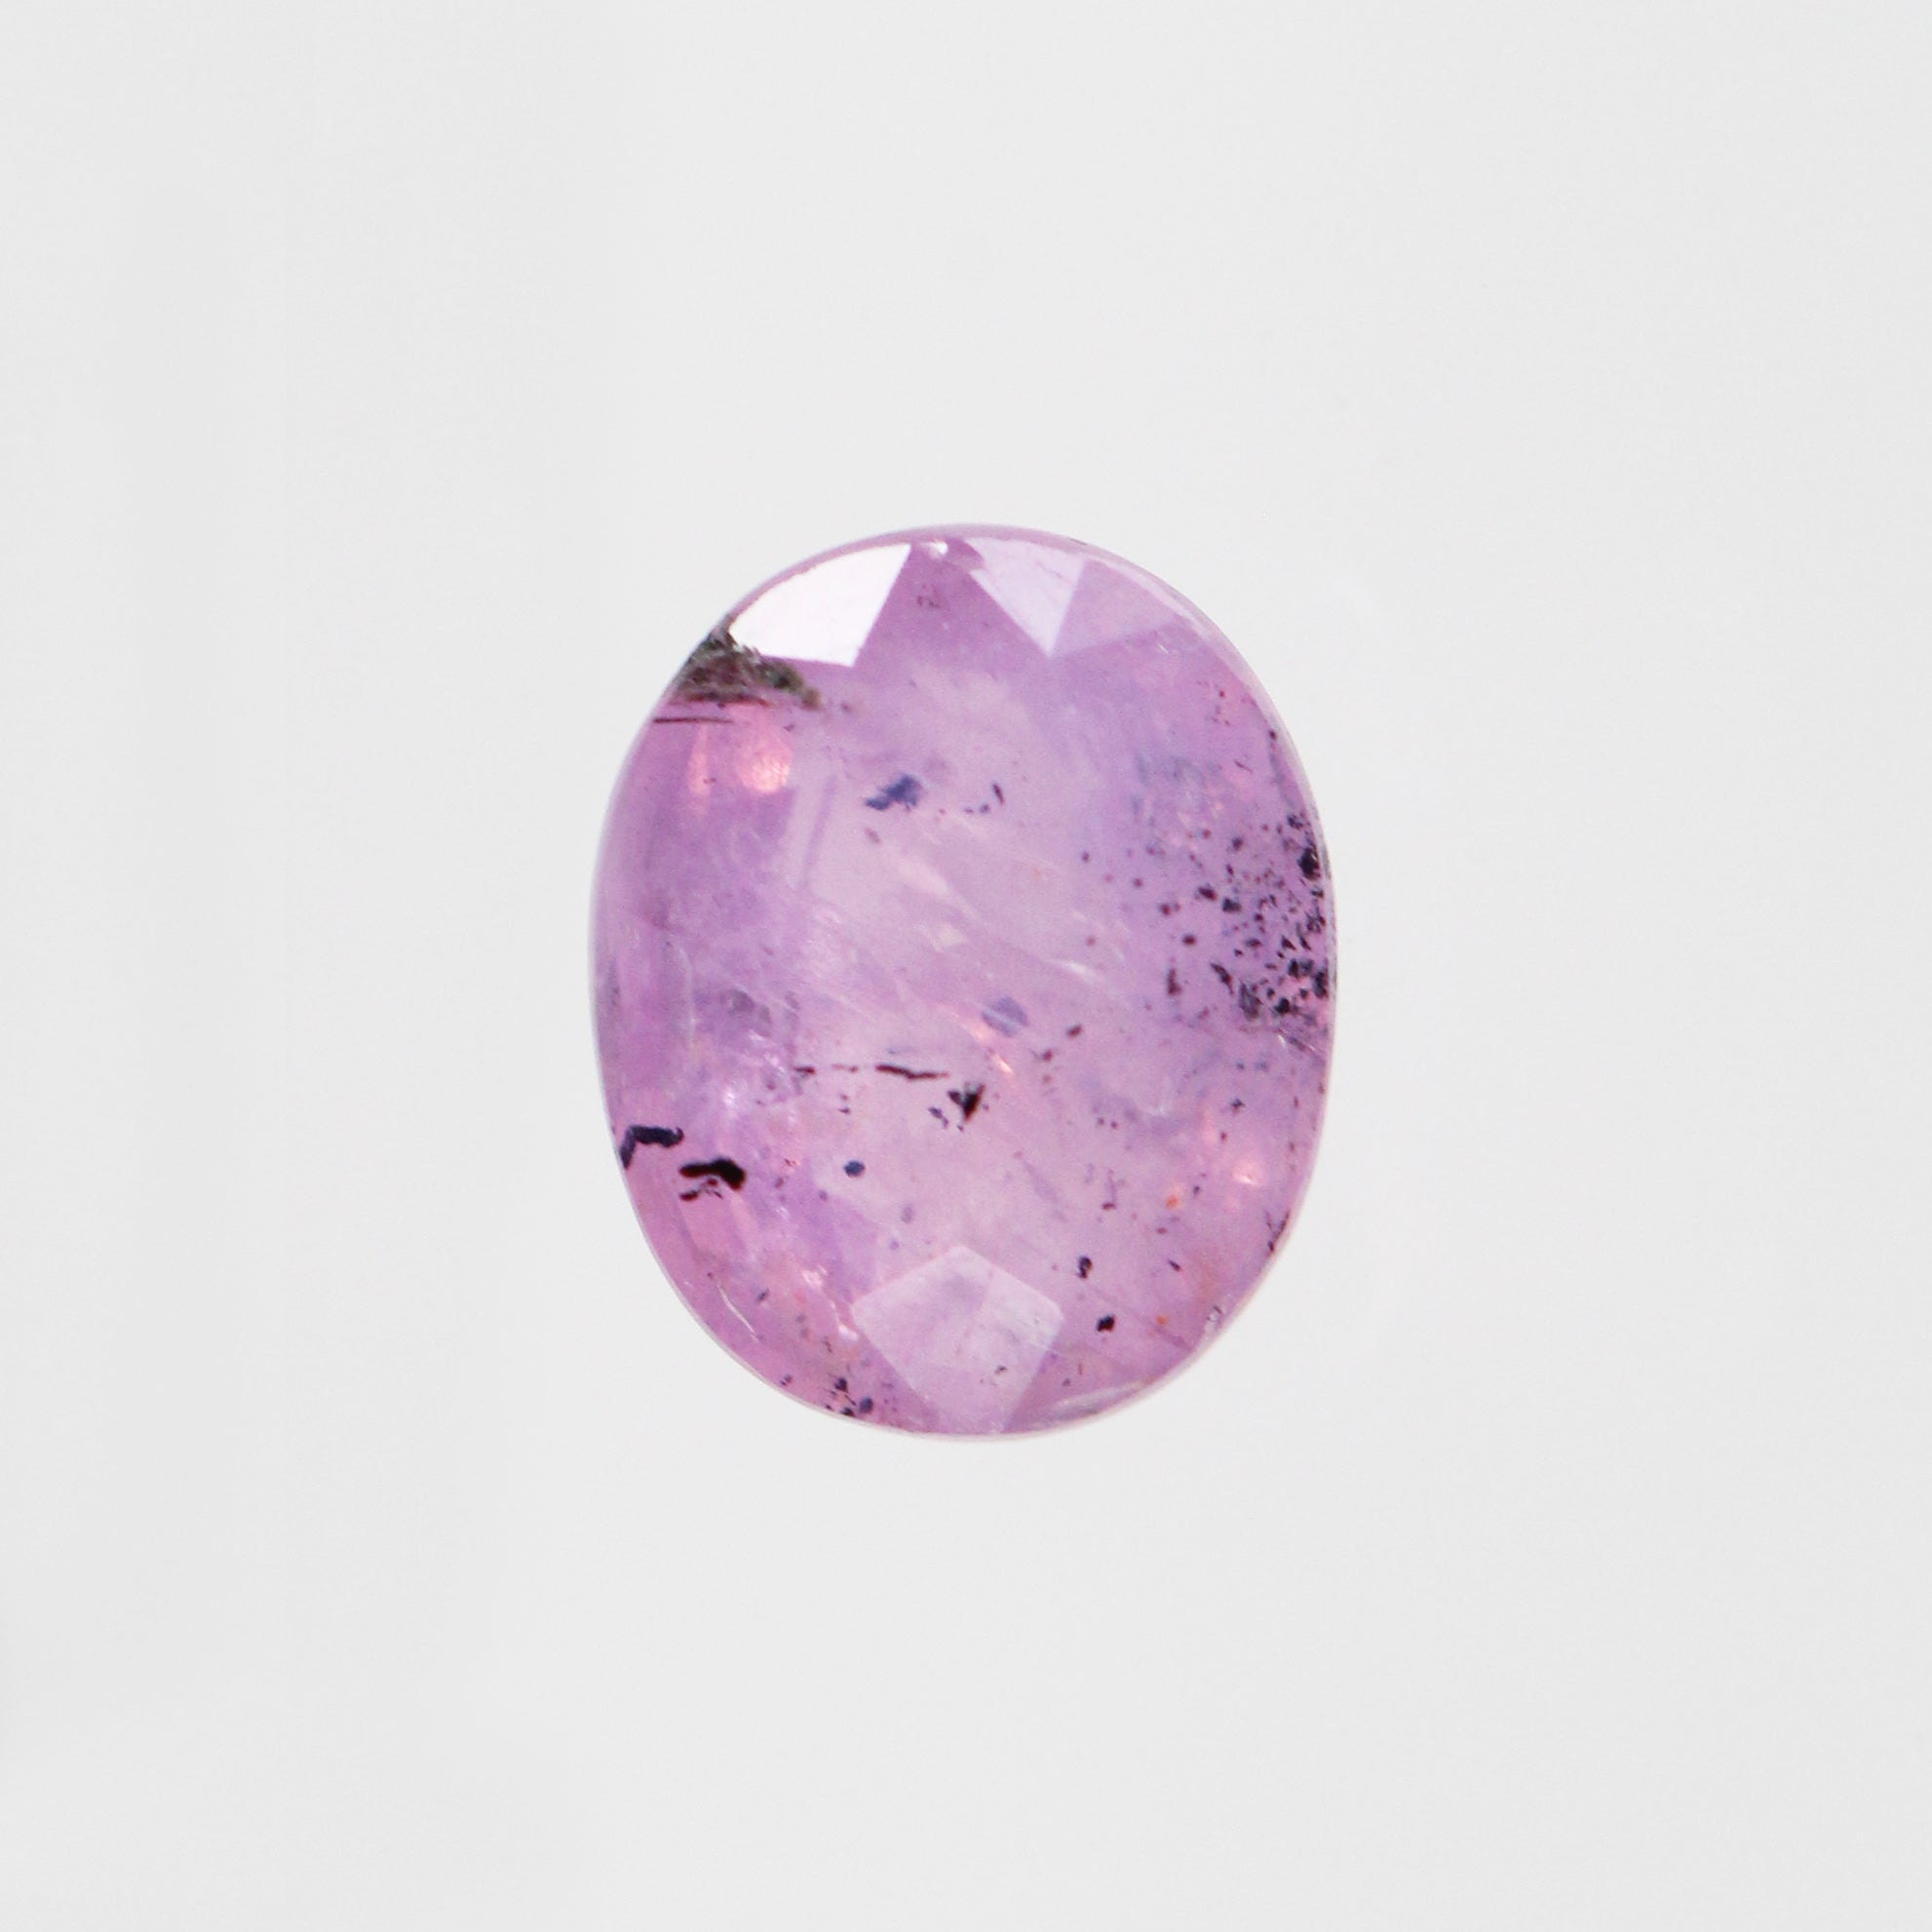 1.34 Carat Oval Sapphire for Custom Work - Inventory Code OBSAP134 - Celestial Diamonds ® by Midwinter Co.